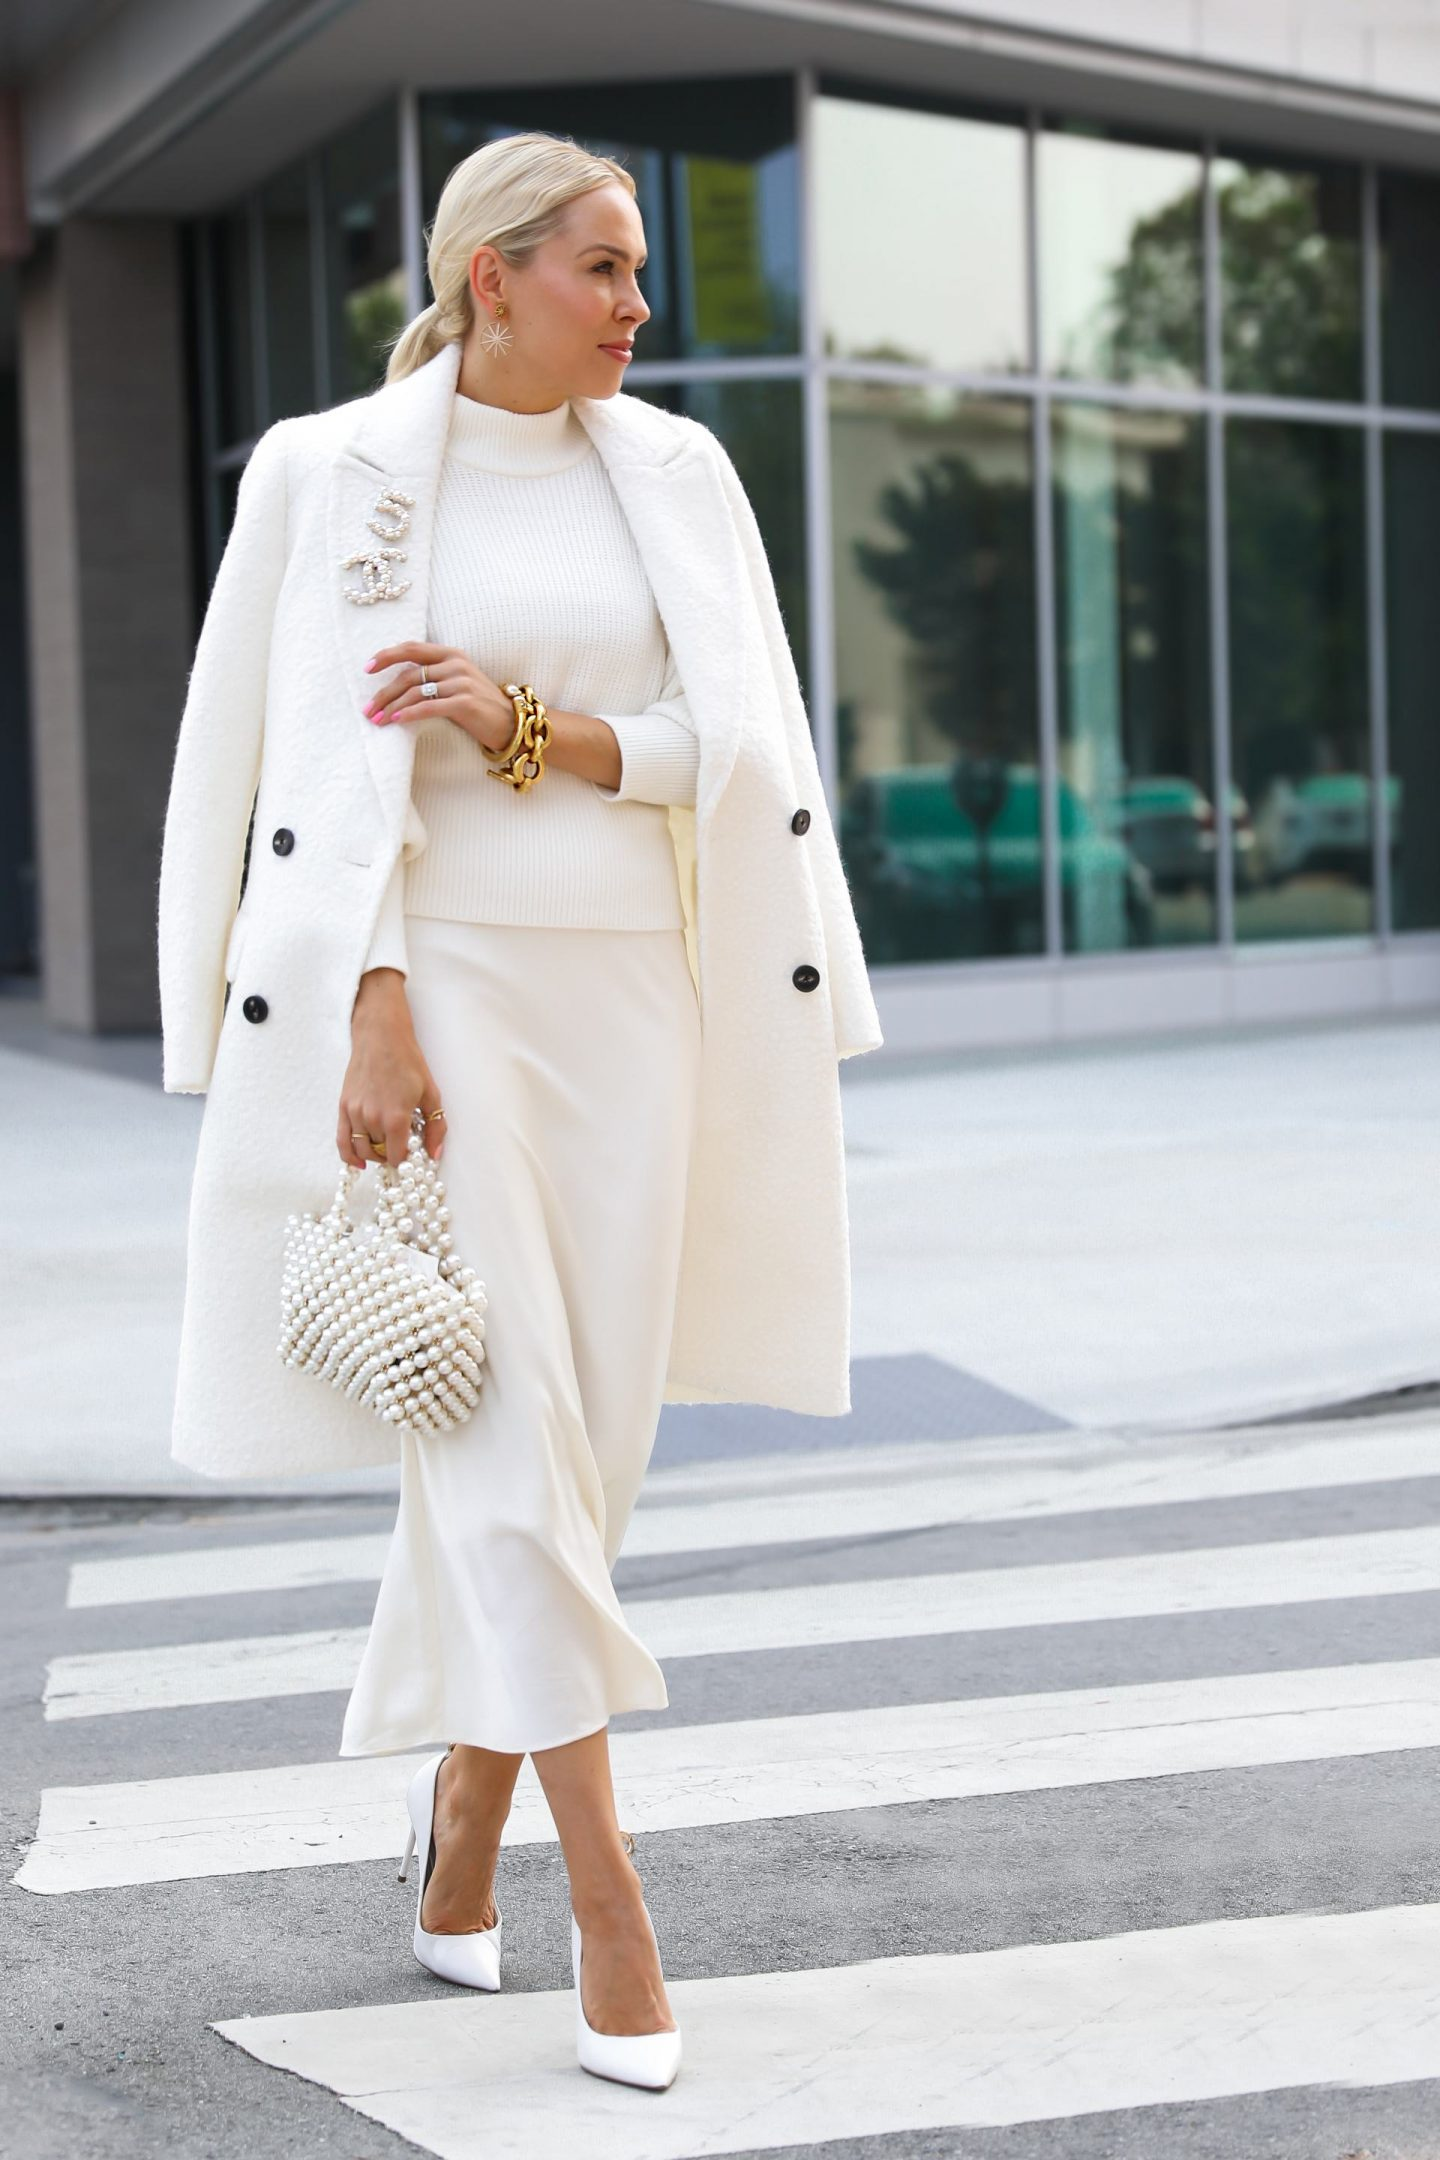 Express white Sherpa Double Breasted Car Coat sale, monochromatic all white style inspiration for fall, by San Francisco fashion blogger Lombard & Fifth.